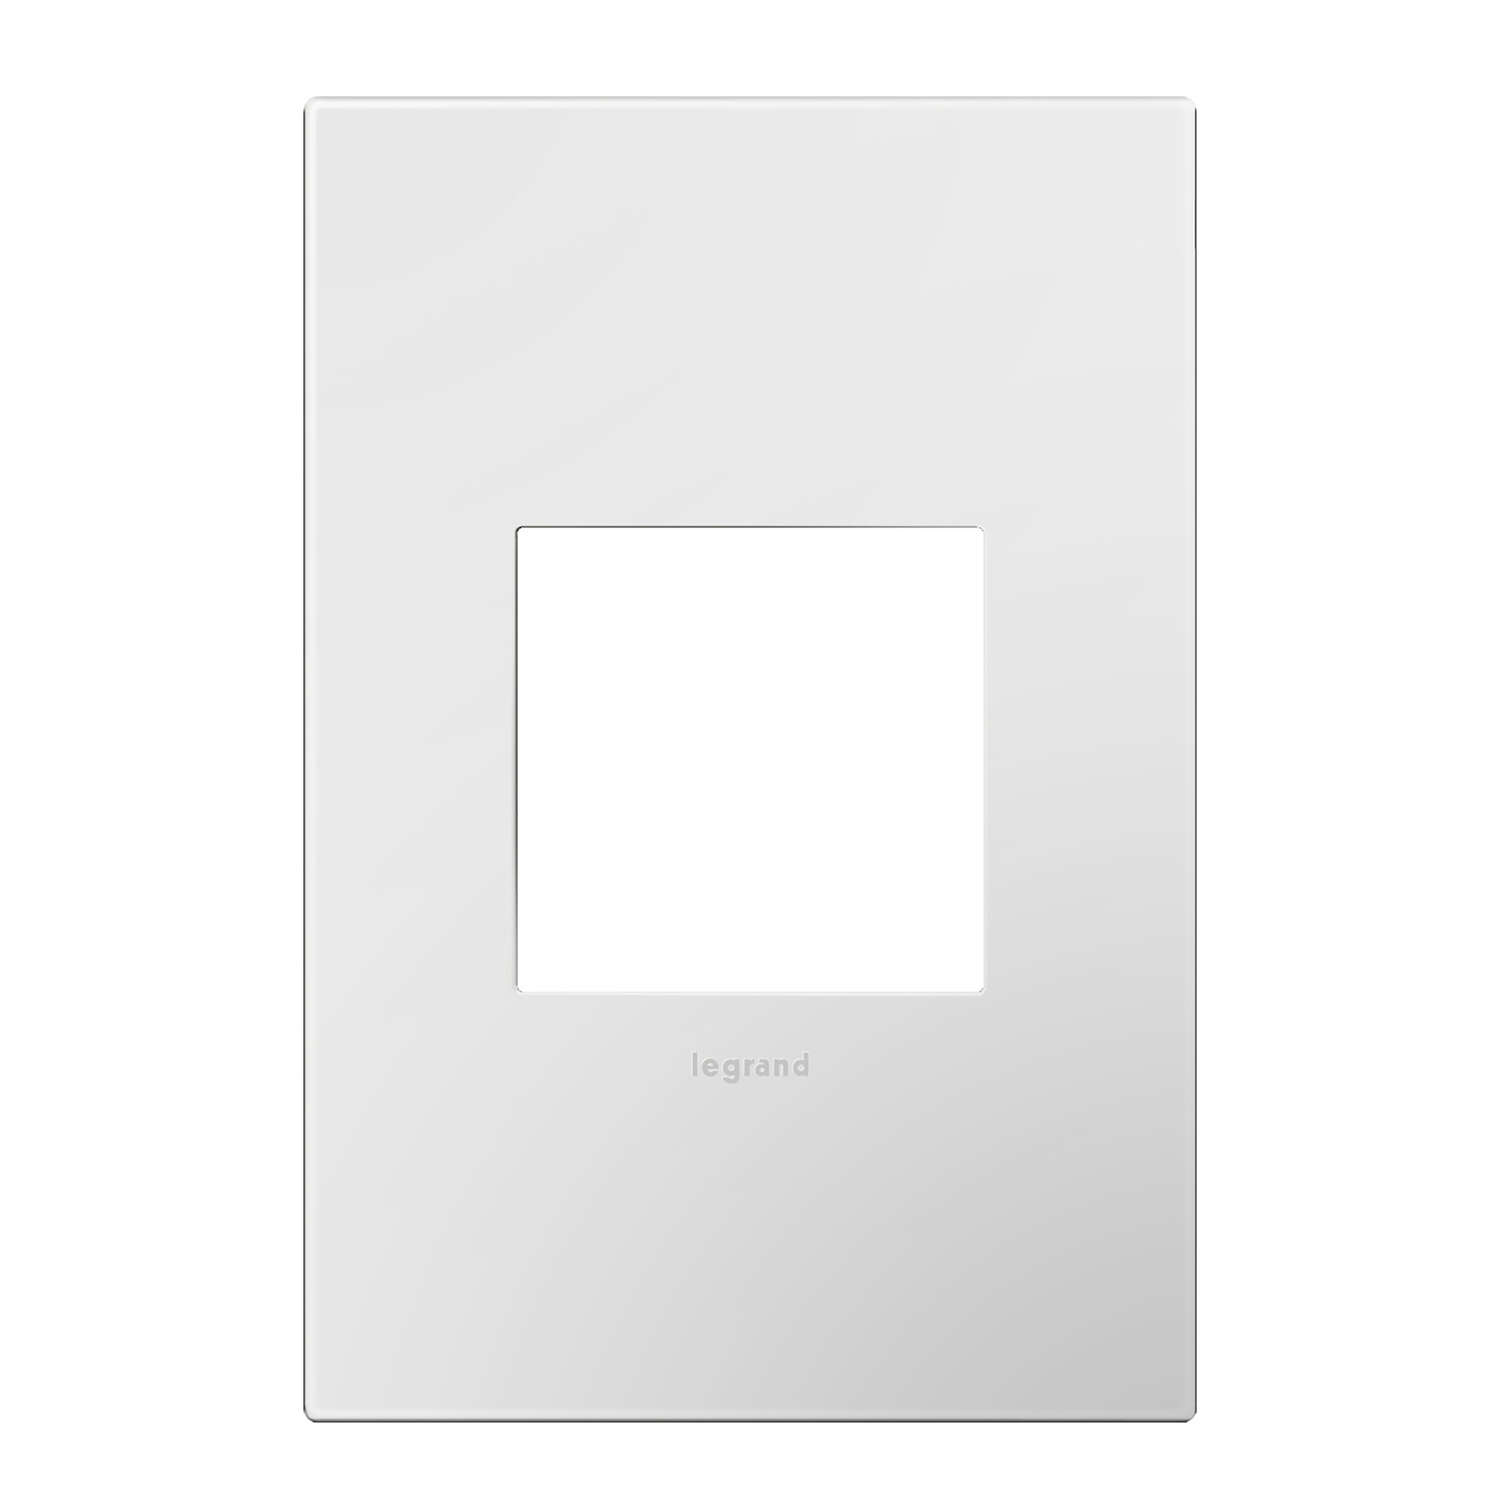 Legrand  Adorne  White  1 gang Thermoplastic Nylon  GFCI/Rocker  Wall Plate  1 pk